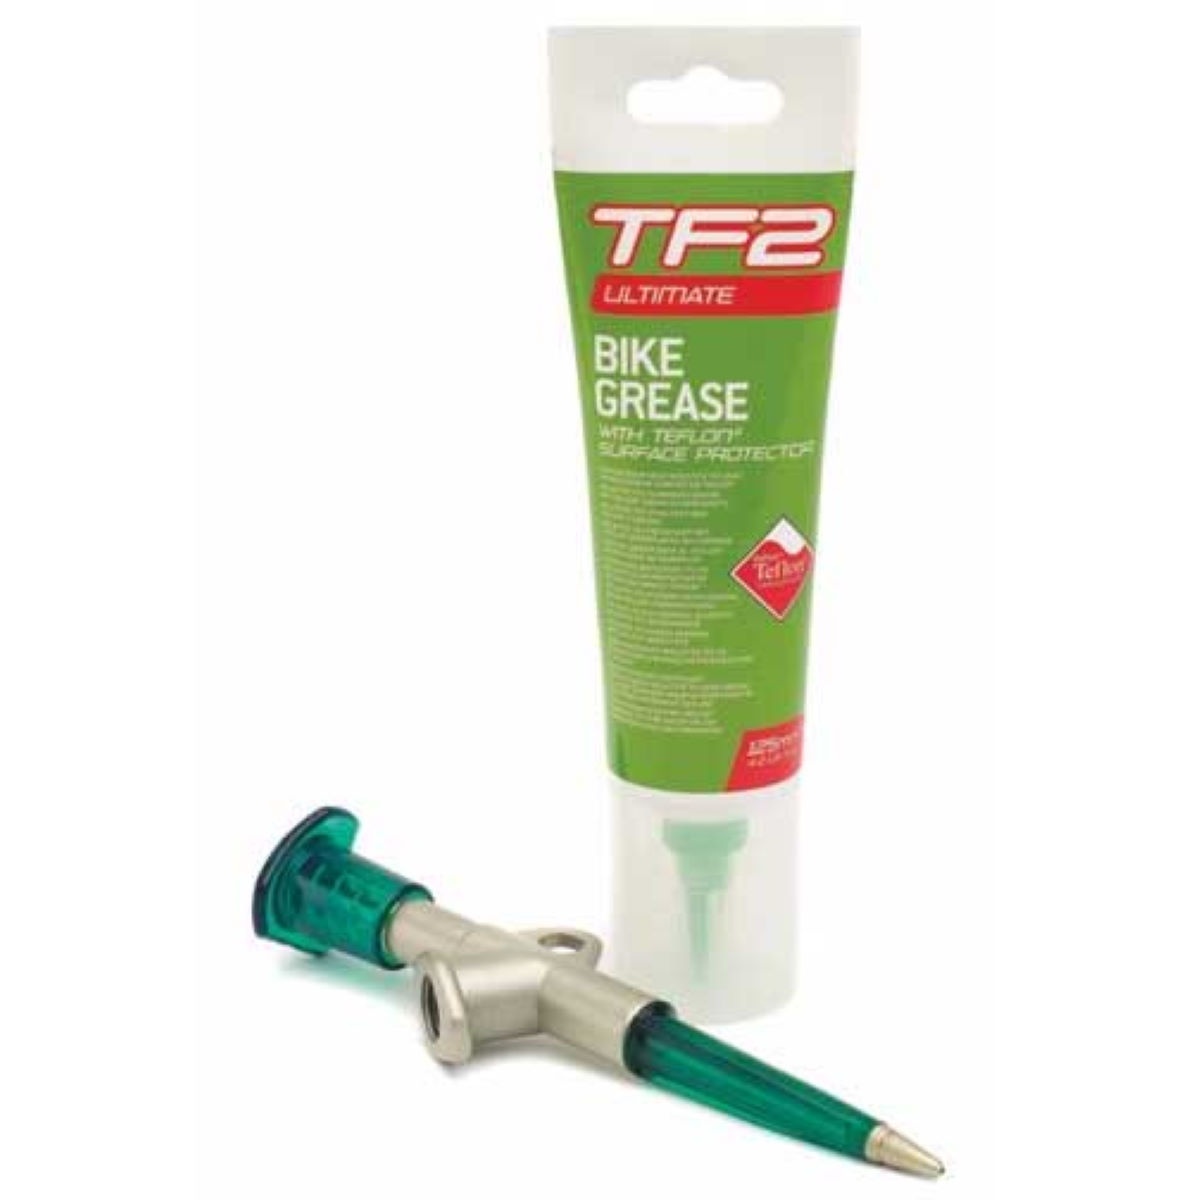 Weldtite Weldtite TF2 Grease Gun With Teflon Bike Grease   Grease